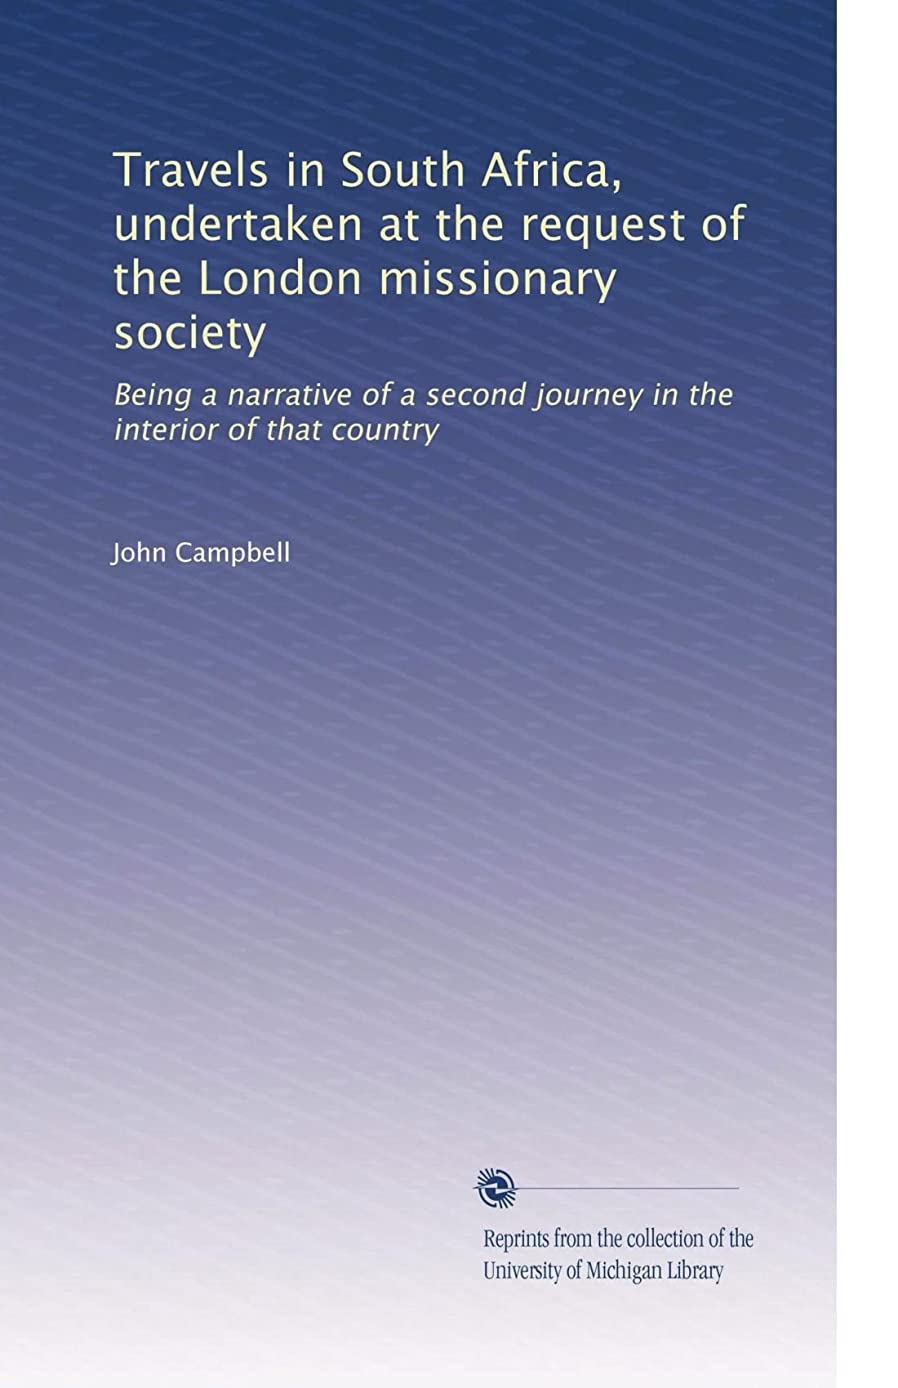 物足りない不純差し引くTravels in South Africa, undertaken at the request of the London missionary society: Being a narrative of a second journey in the interior of that country